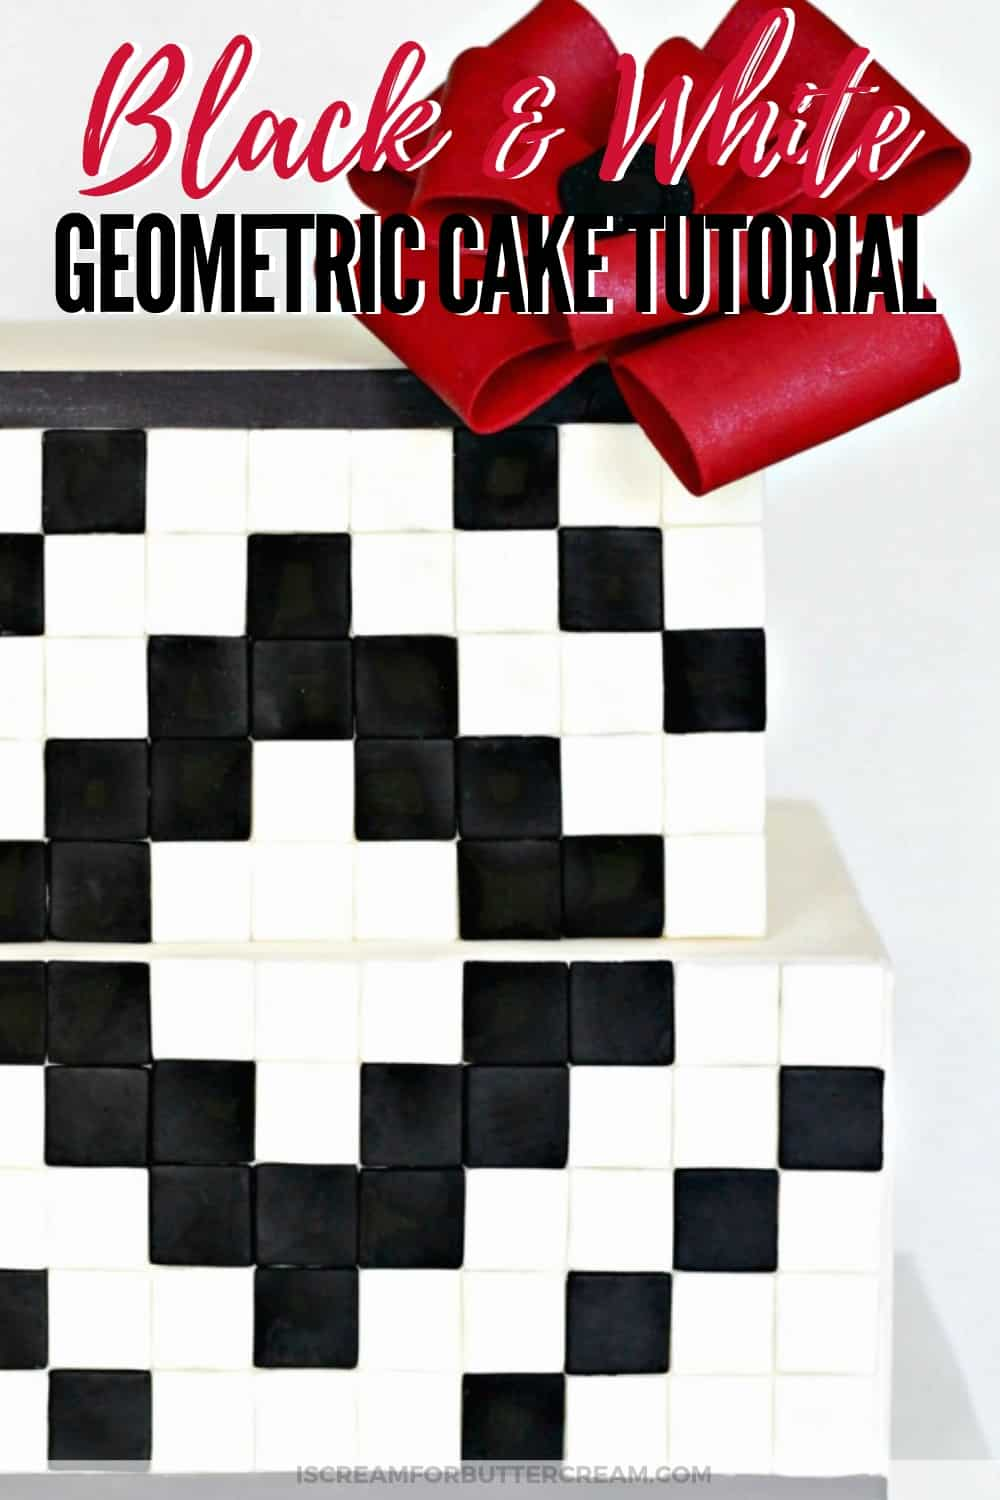 Black and White Geometric Cake Tutorial new Pin 2